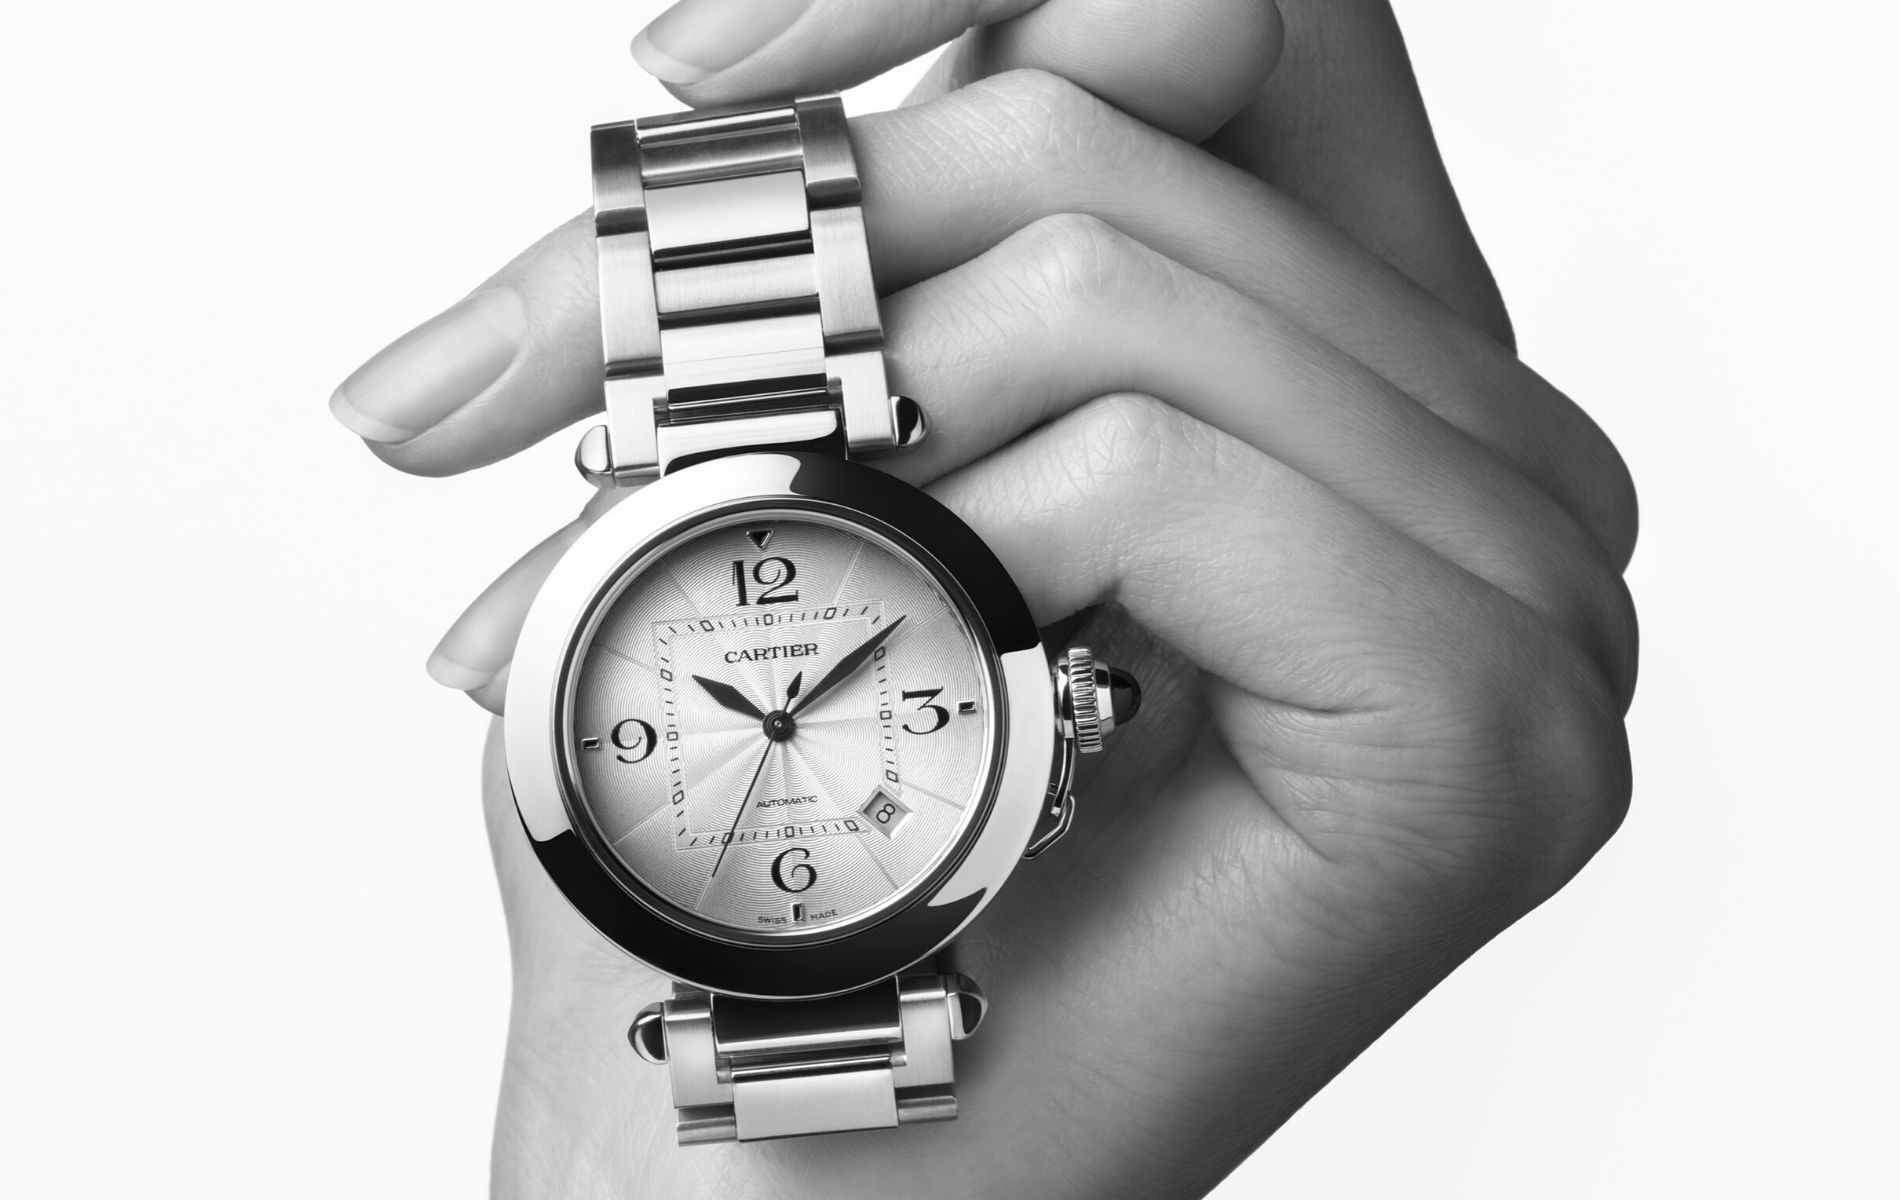 Watches & Wonders 2020: Cartier Turns Old Watches Into New Again